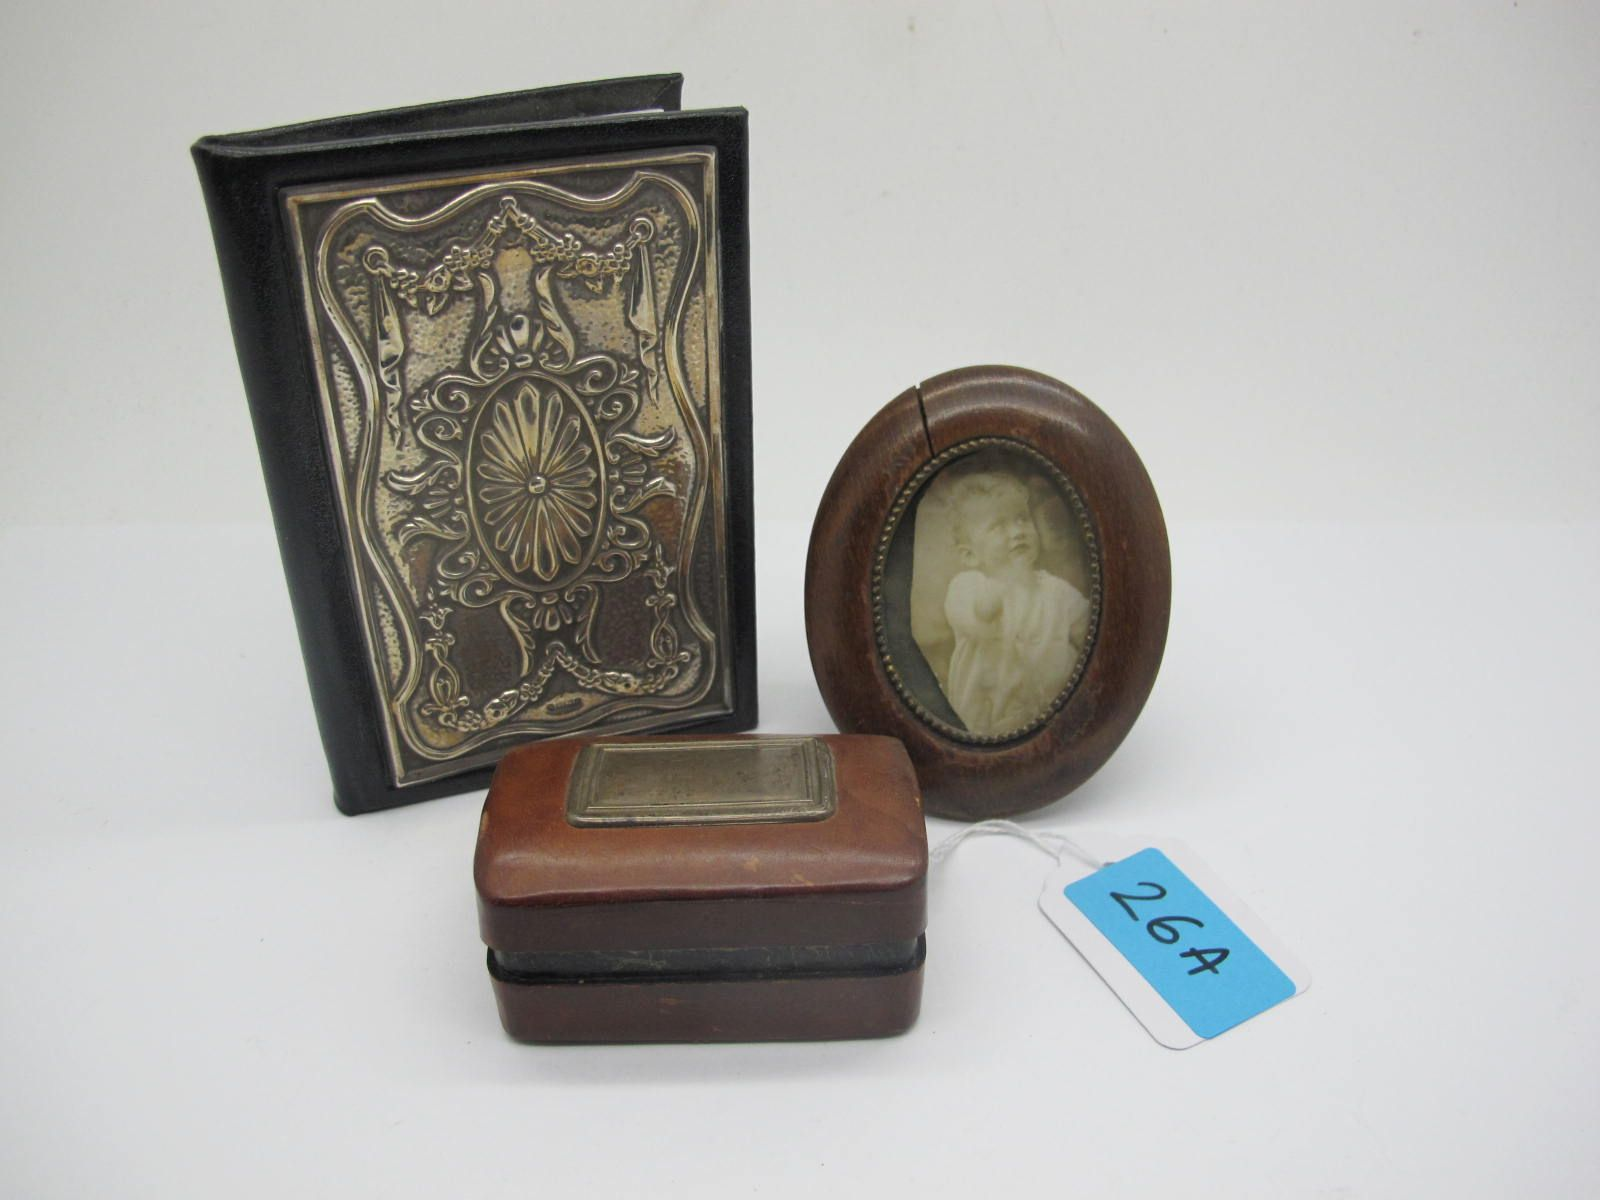 A Hallmarked Silver Mounted Address Book, detailed in relief; together with an Italian leather